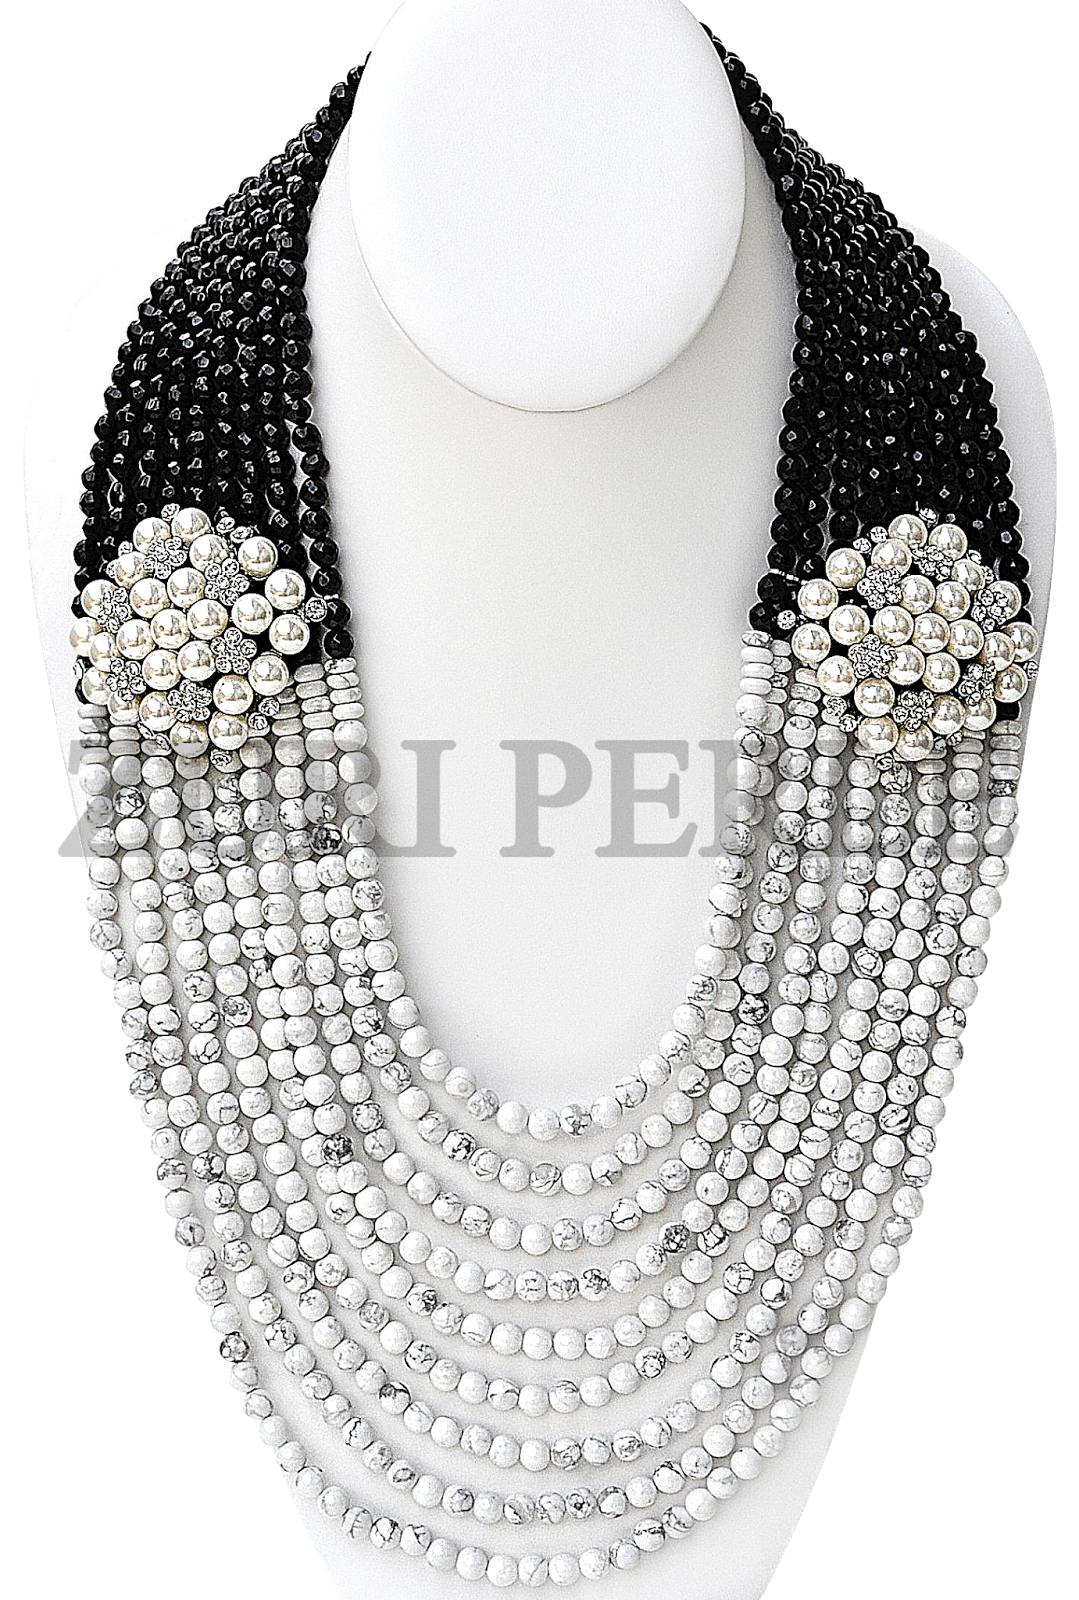 WHITE HOLITE BEADS WITH BLACK FACETED ONYX BEADS